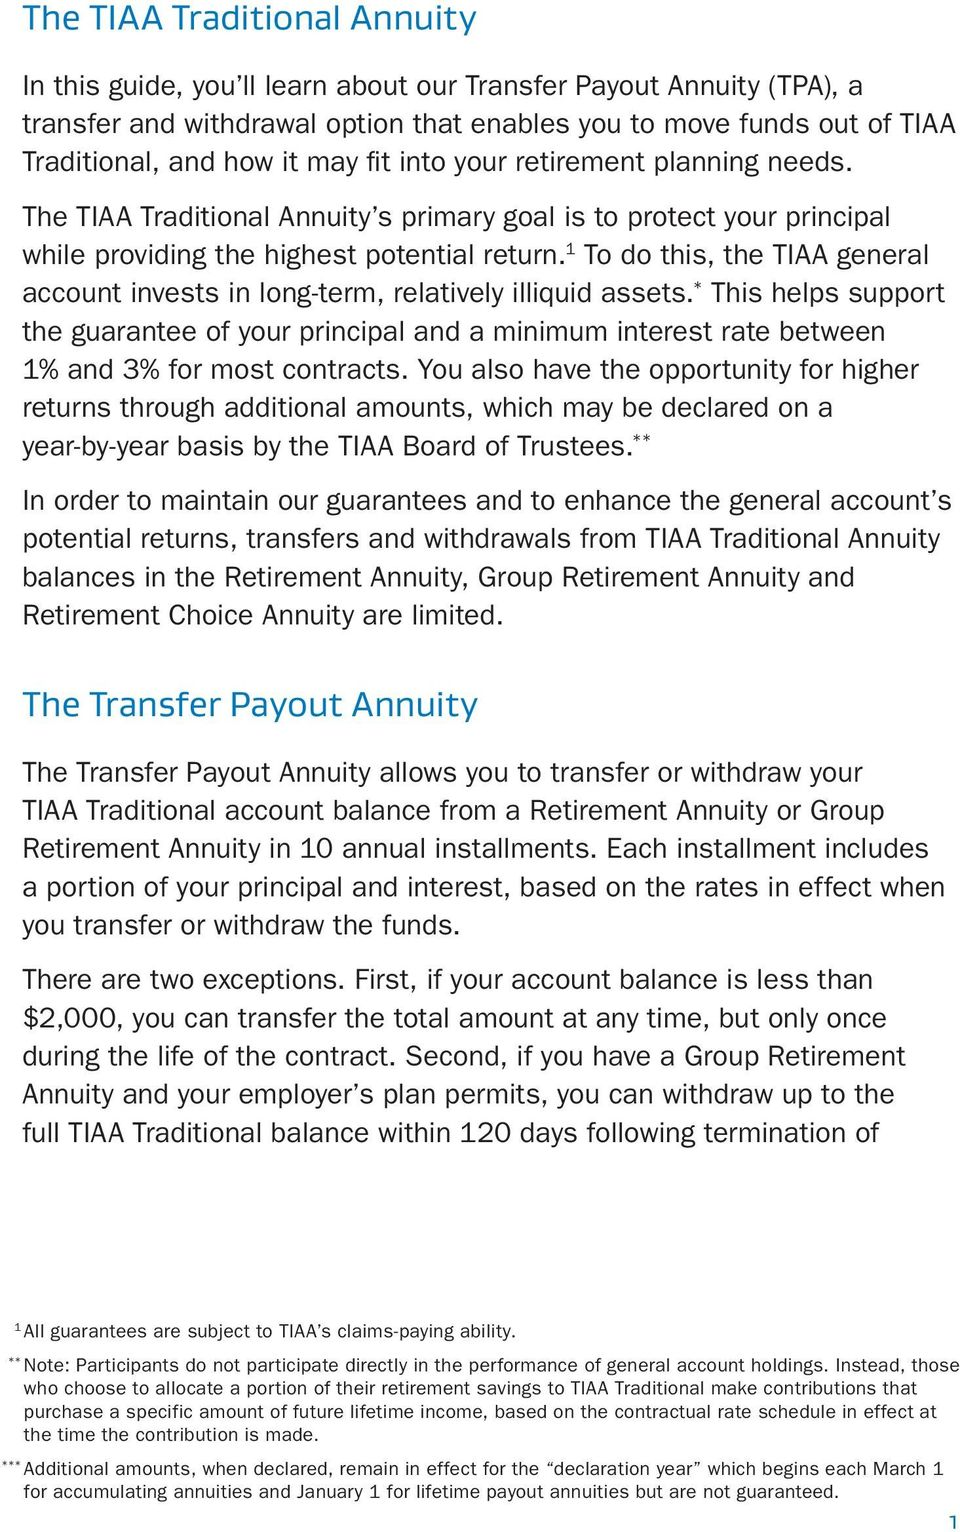 1 To do this, the TIAA general account invests in long-term, relatively illiquid assets.